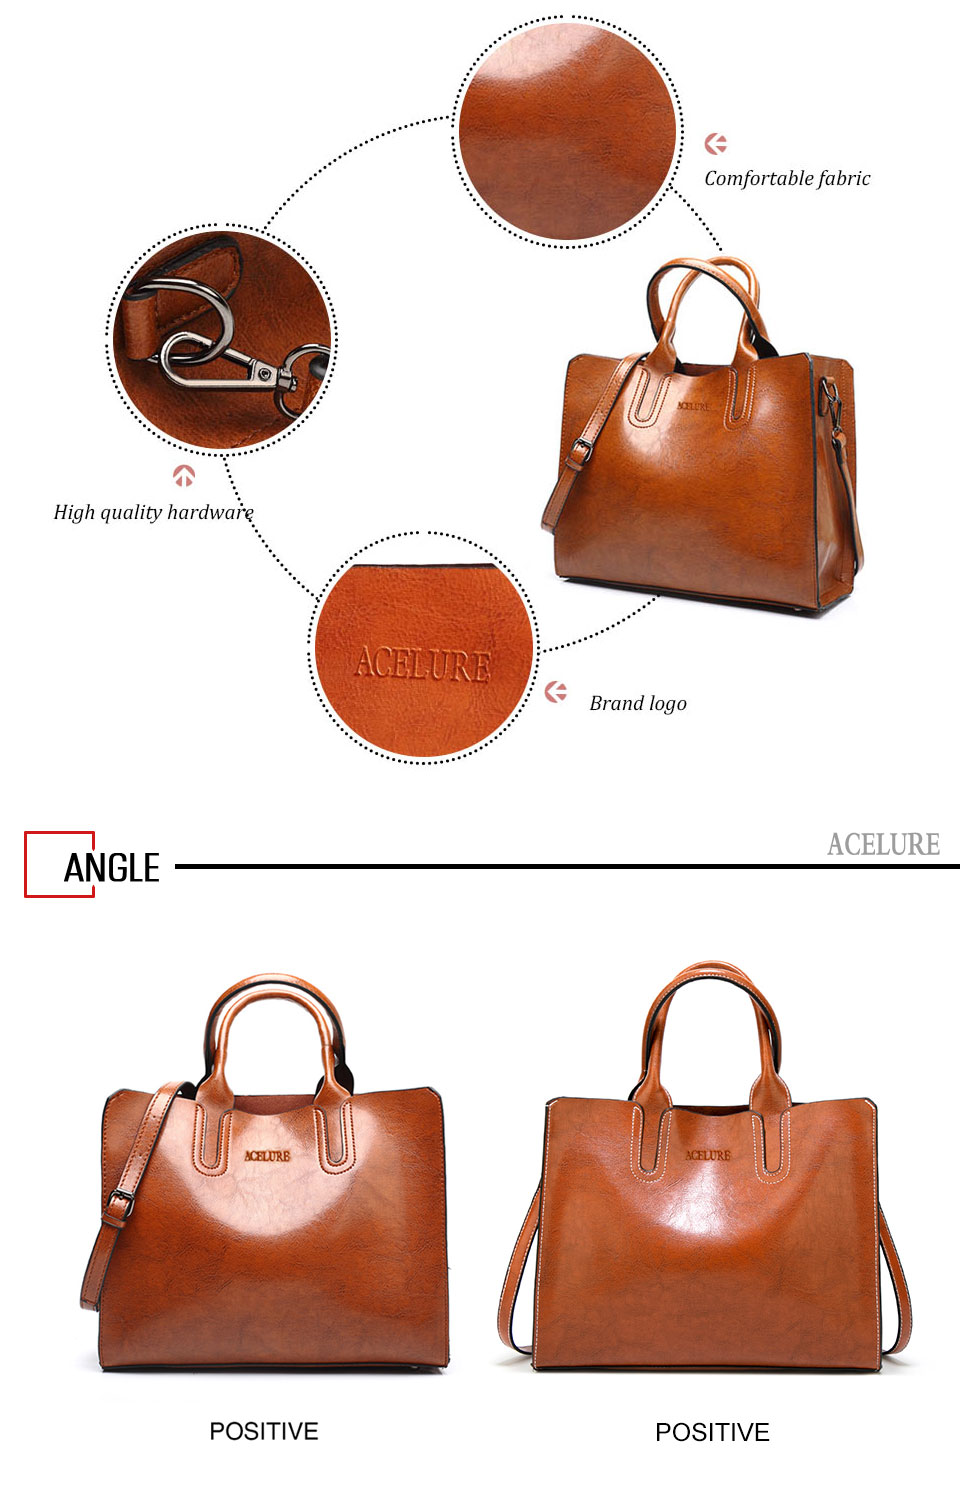 ACELURE Leather Handbags Big Women Bag High Quality Casual Female Bags Trunk Tote Spanish Brand Shoulder Bag Ladies Large Bolsos 12